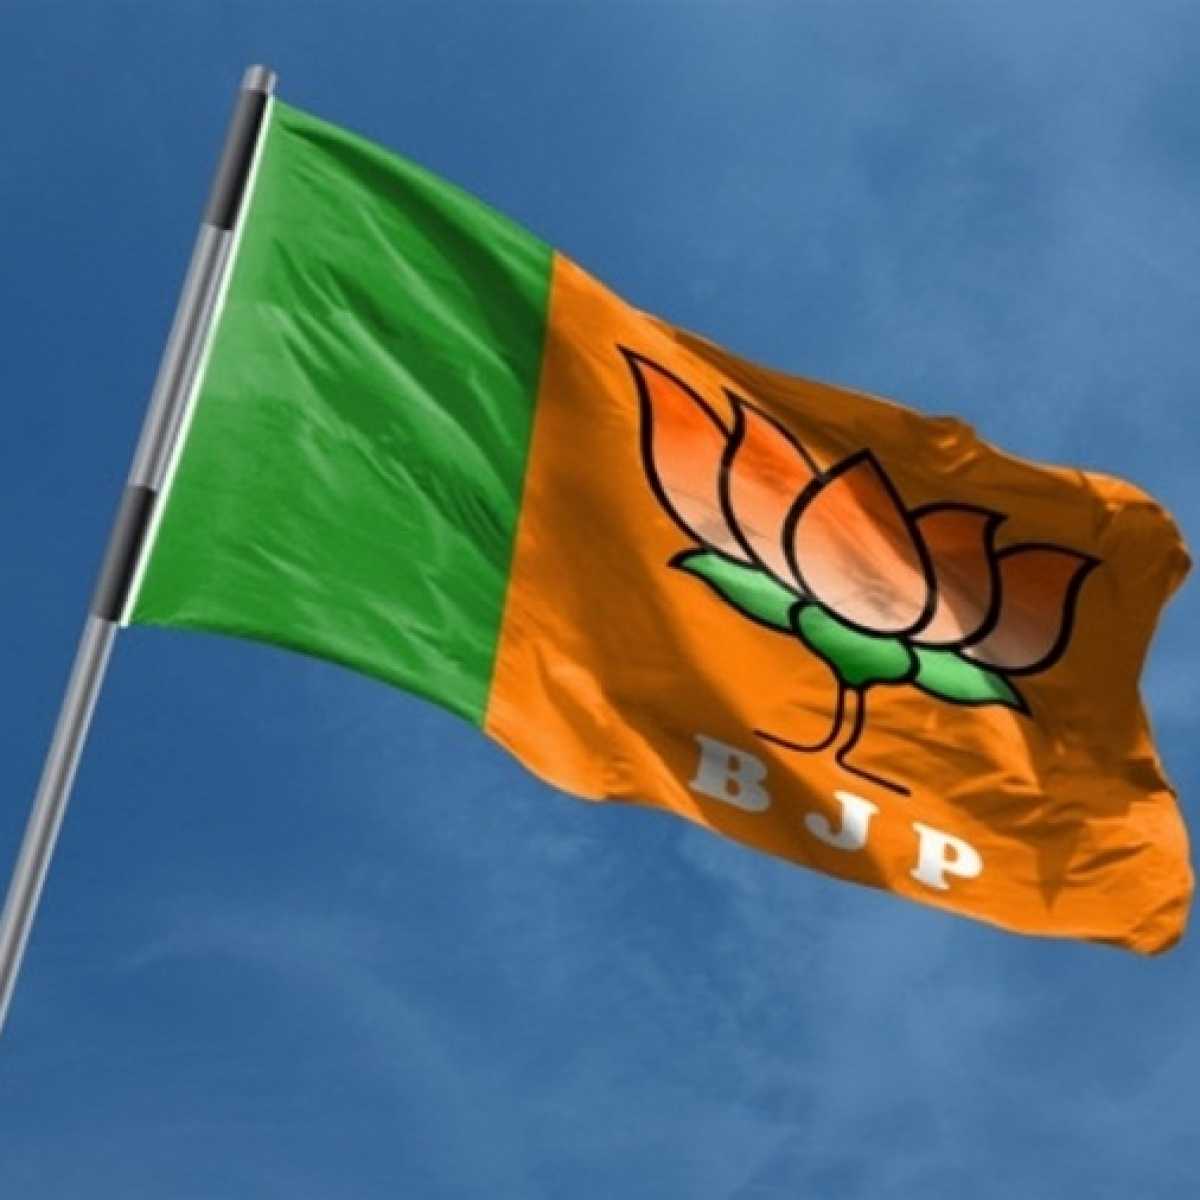 BJP expelled sitting legislator from party